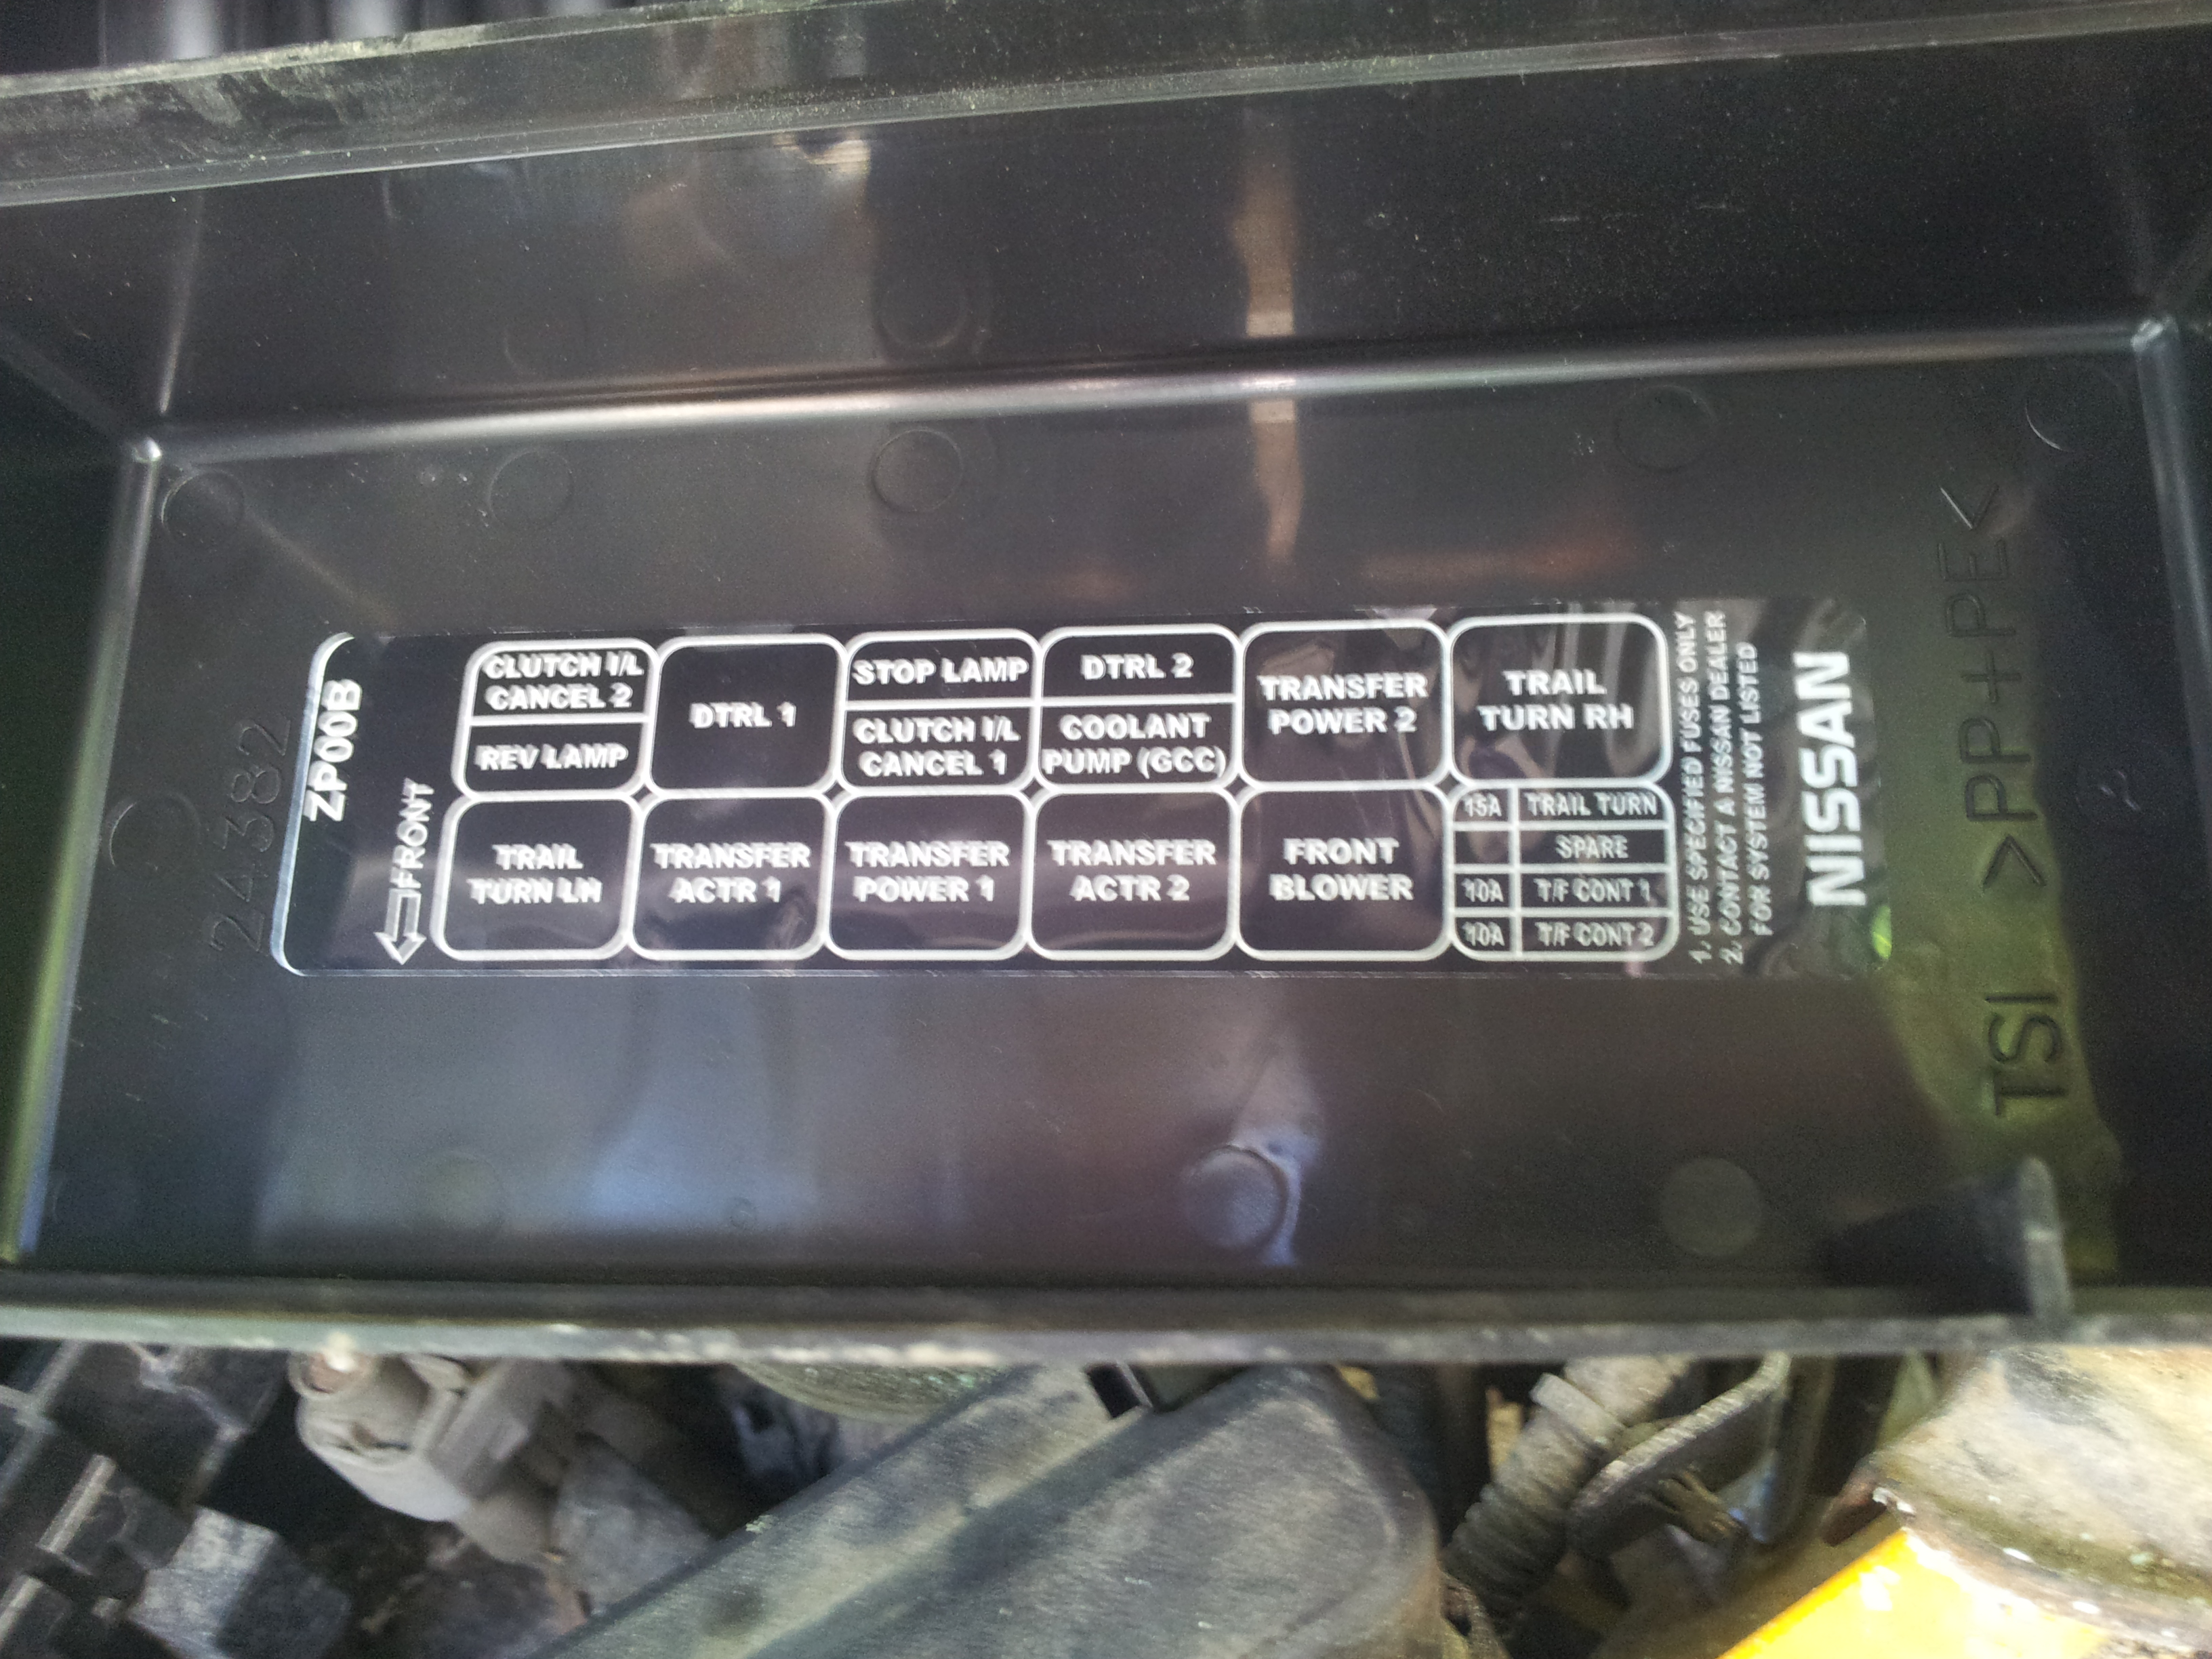 2005 Nissan Maxima Fuse Box Wiring Library Versa Panel Diagram 2000 Headlight 2004 Location